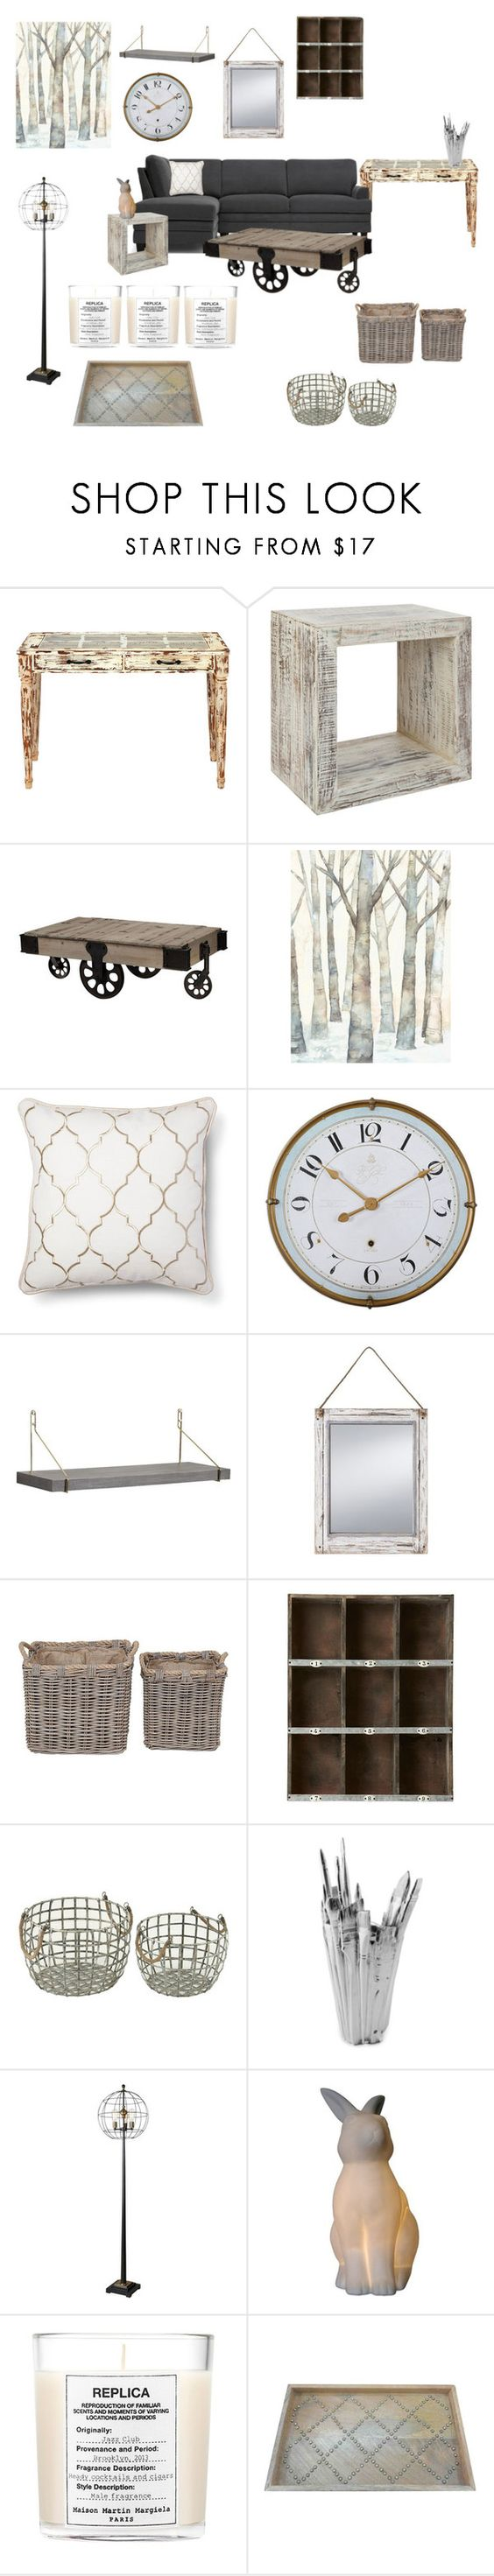 """Untitled #577"" by mrsmaggiemay ❤ liked on Polyvore featuring interior, interiors, interior design, home, home decor, interior decorating, Dot & Bo, Alouette, CB2 and Prinz"